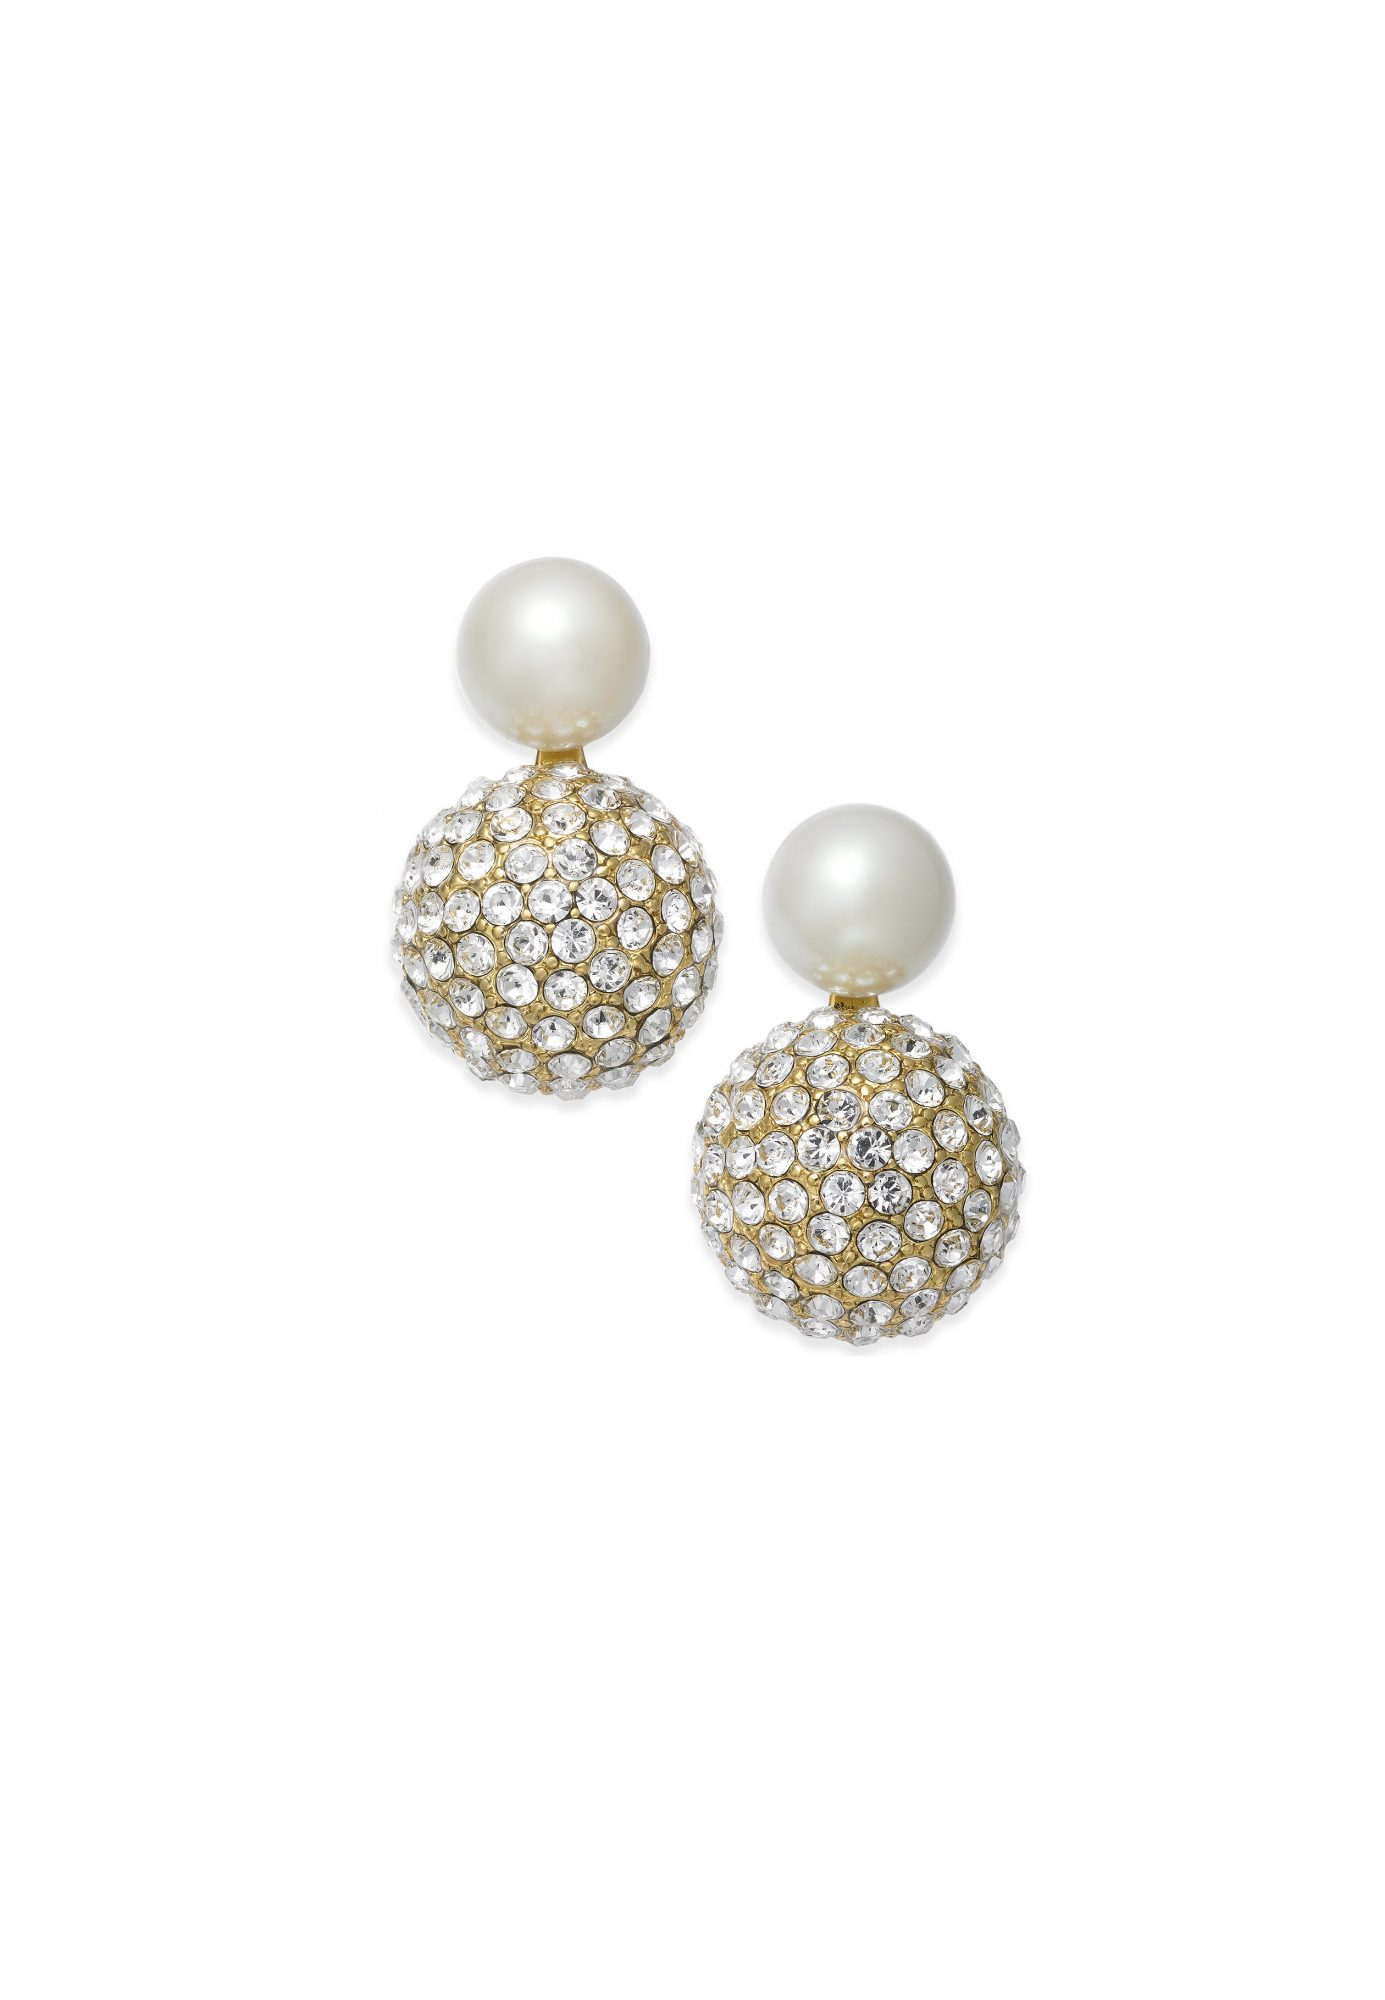 Kate Spade New York Gold-Tone Imitation Pearl and Fireball Drop Earrings